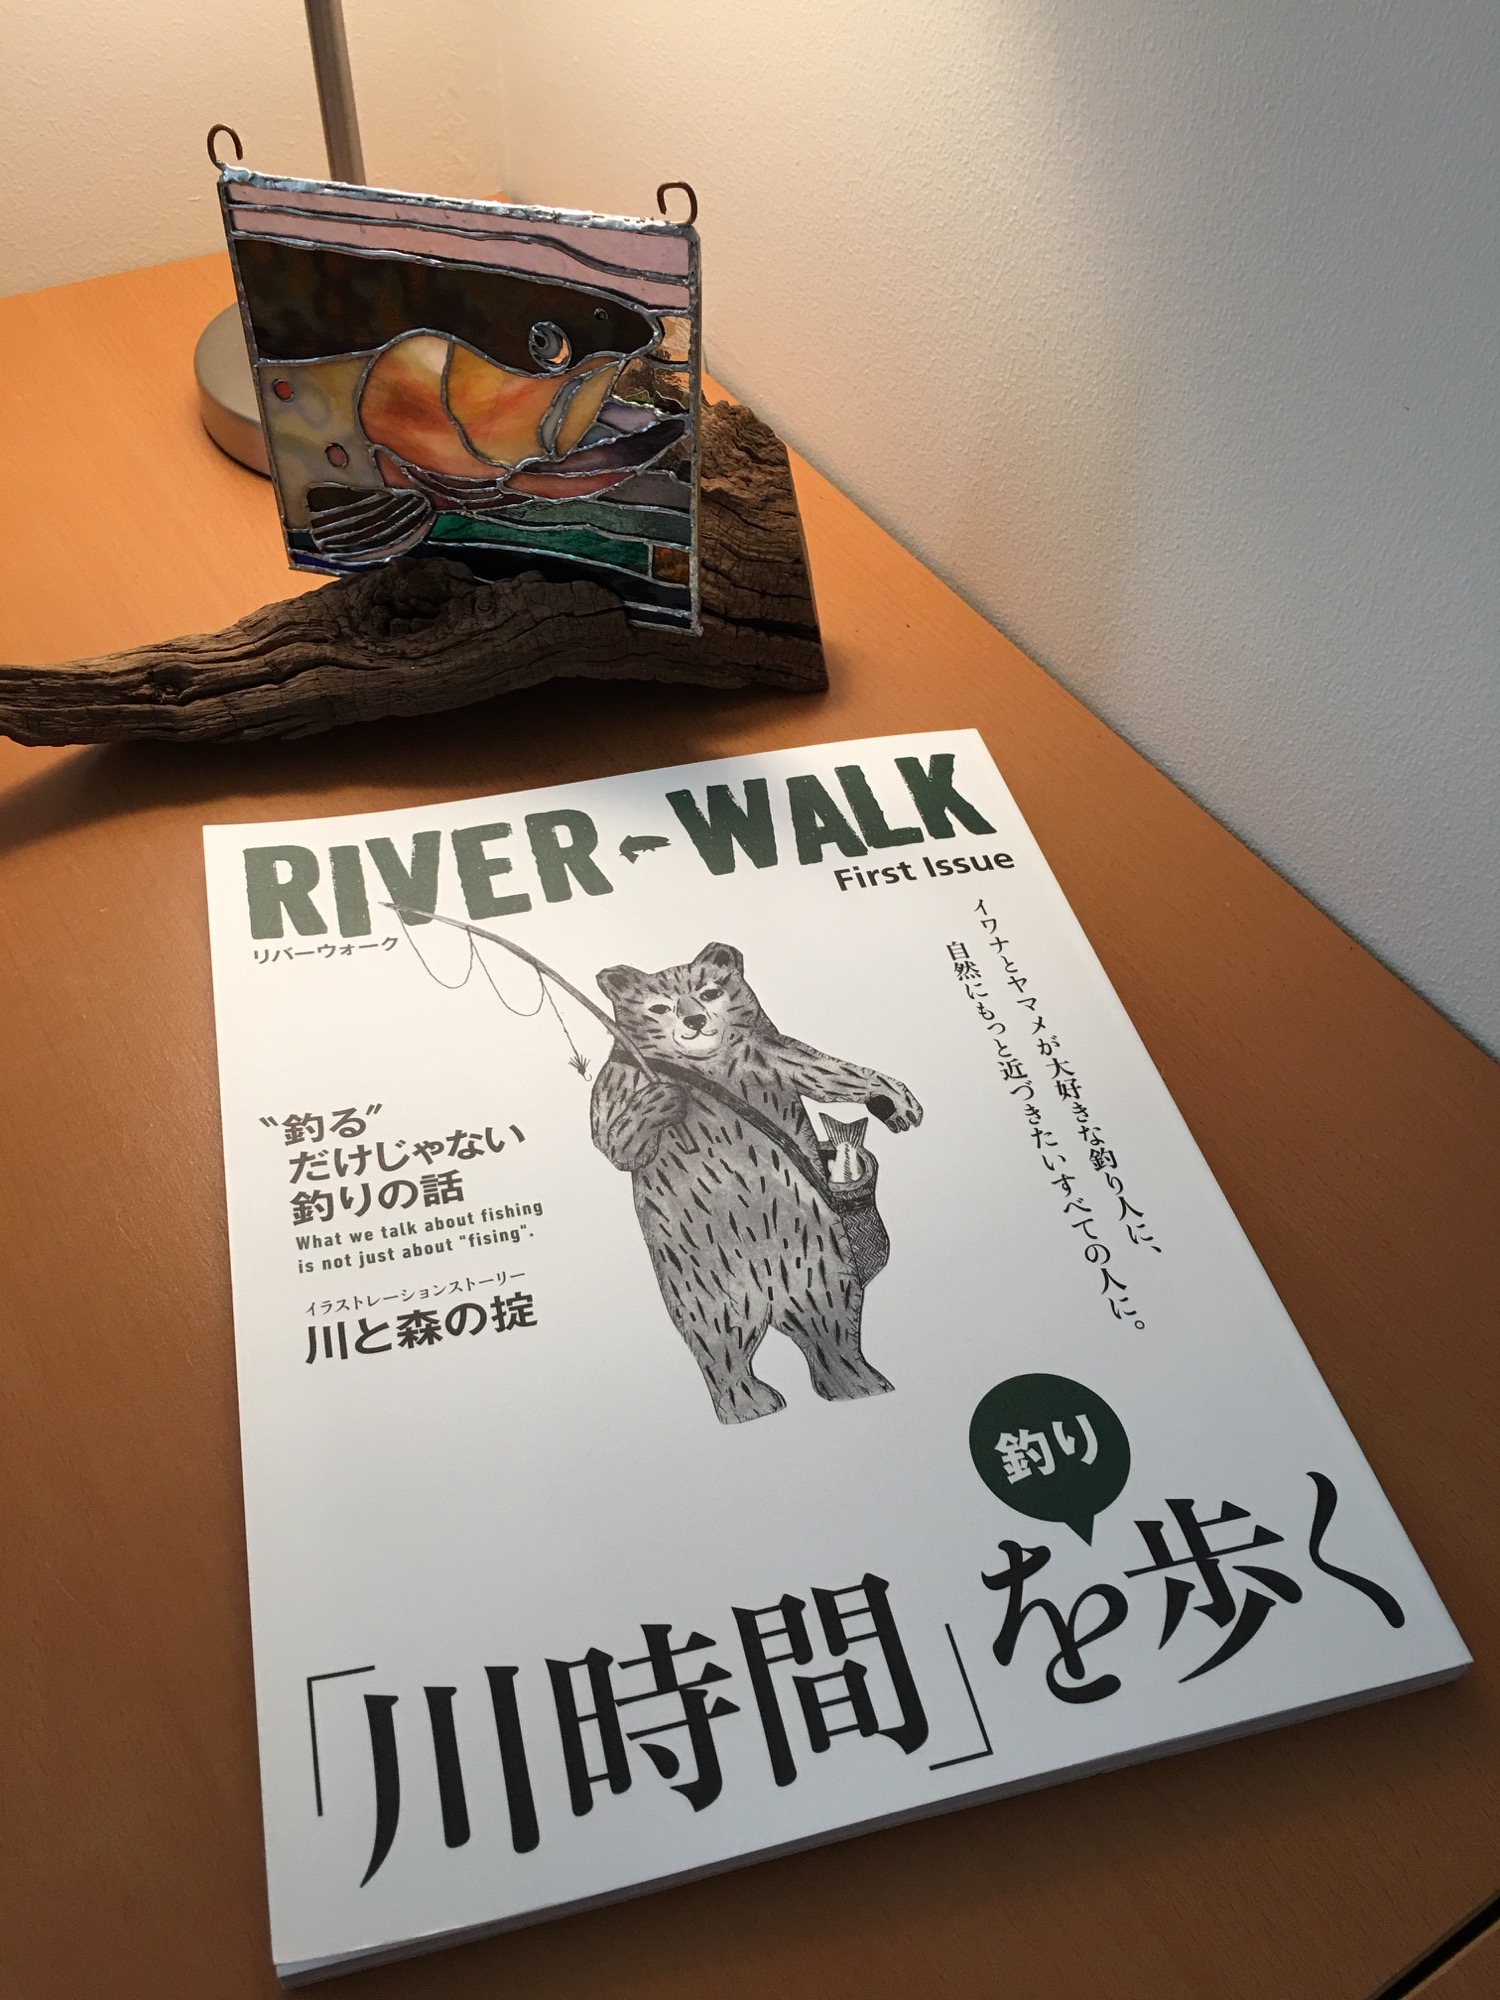 River Walk - First Issue